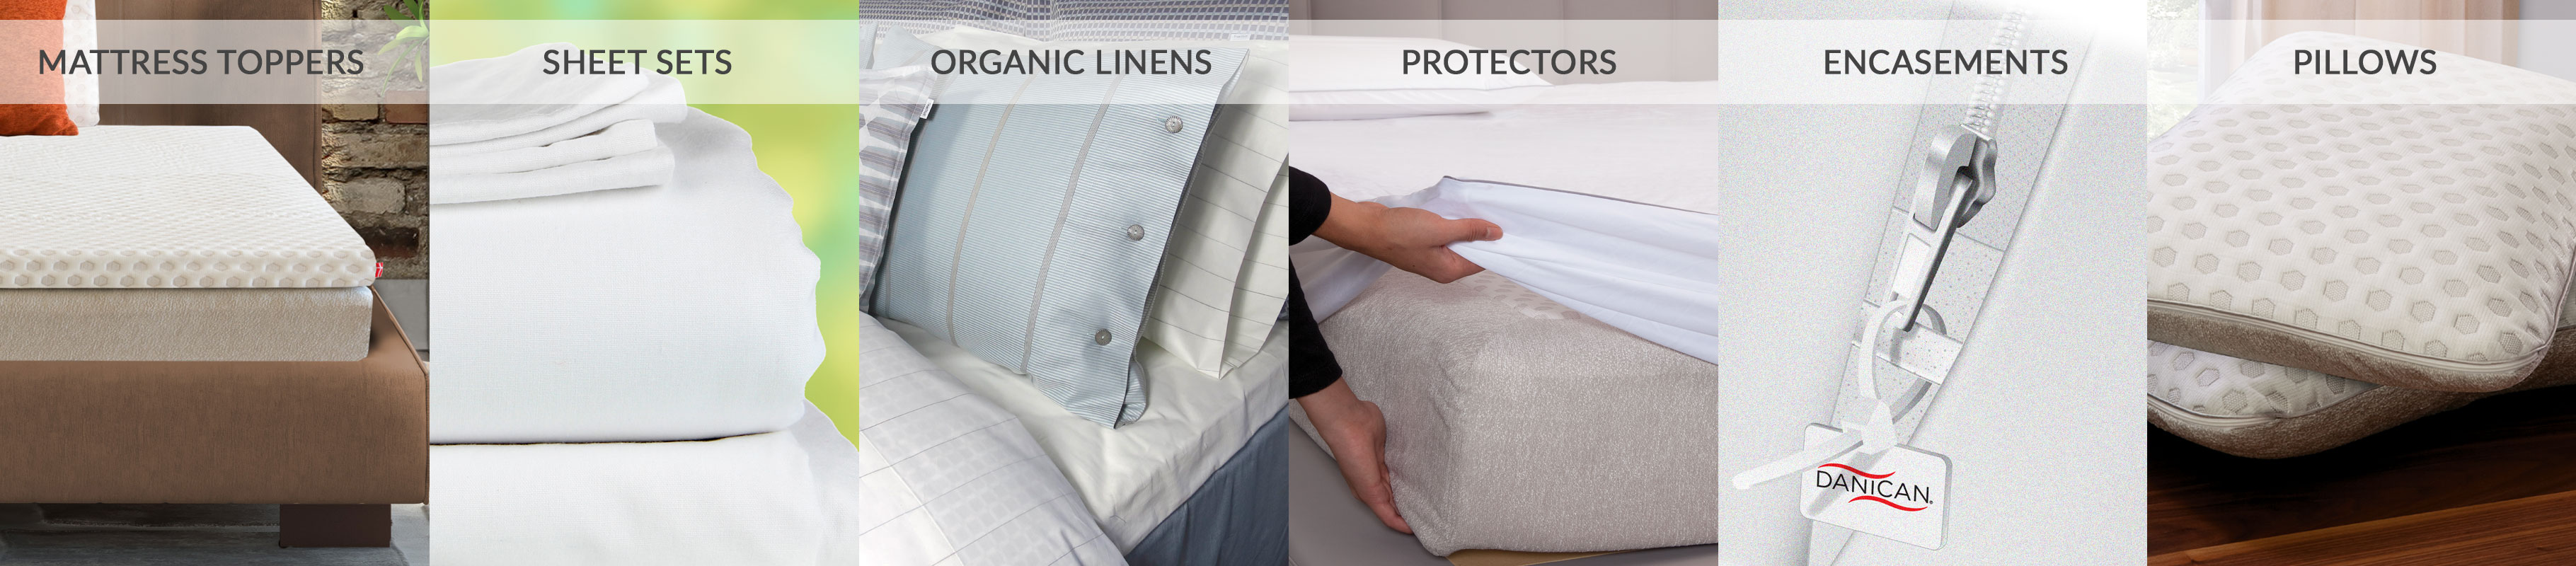 Danican Private Label Bedding Product Line - Wholesale Bedding Manufacturer - Mattresses - Memory Foam - Mattress Toppers - Hybrid Mattress - Private Label Bedding Sheets - Private Label Organic Linens - Private Label Mattress Protectors - Private Label Mattress Encasements - Private Label Pillow Protectors - Danican Bedding